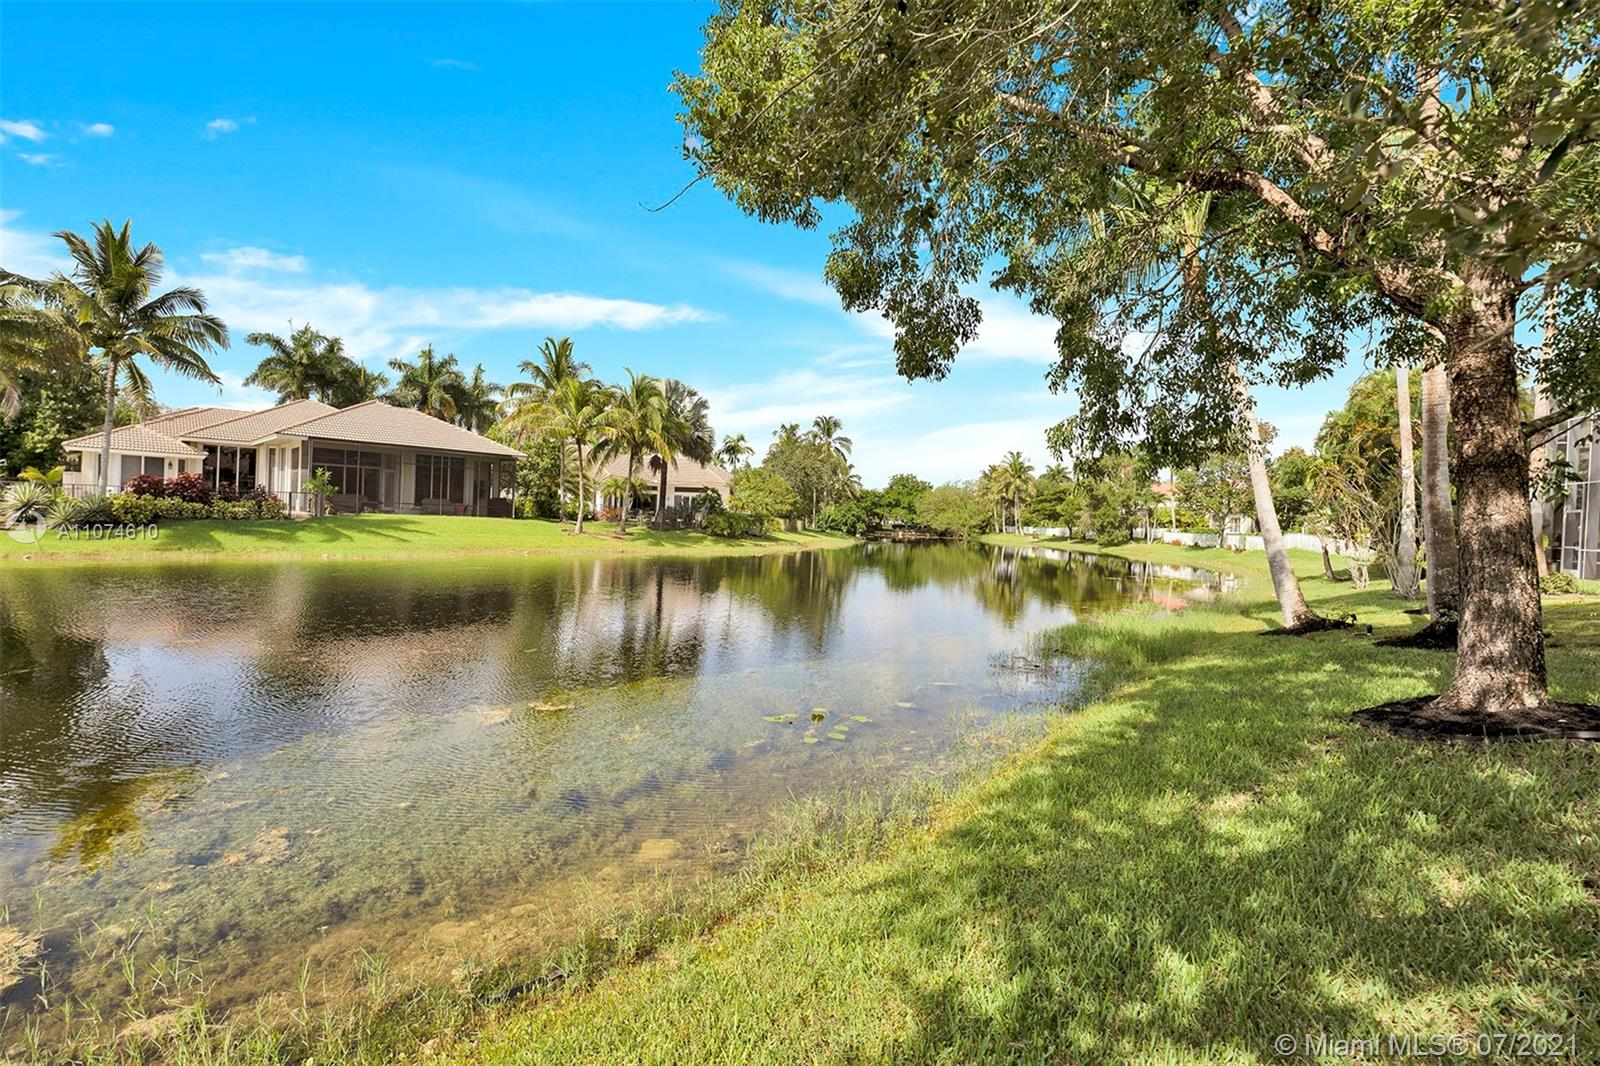 Listing A11074610 - Large Photo # 37